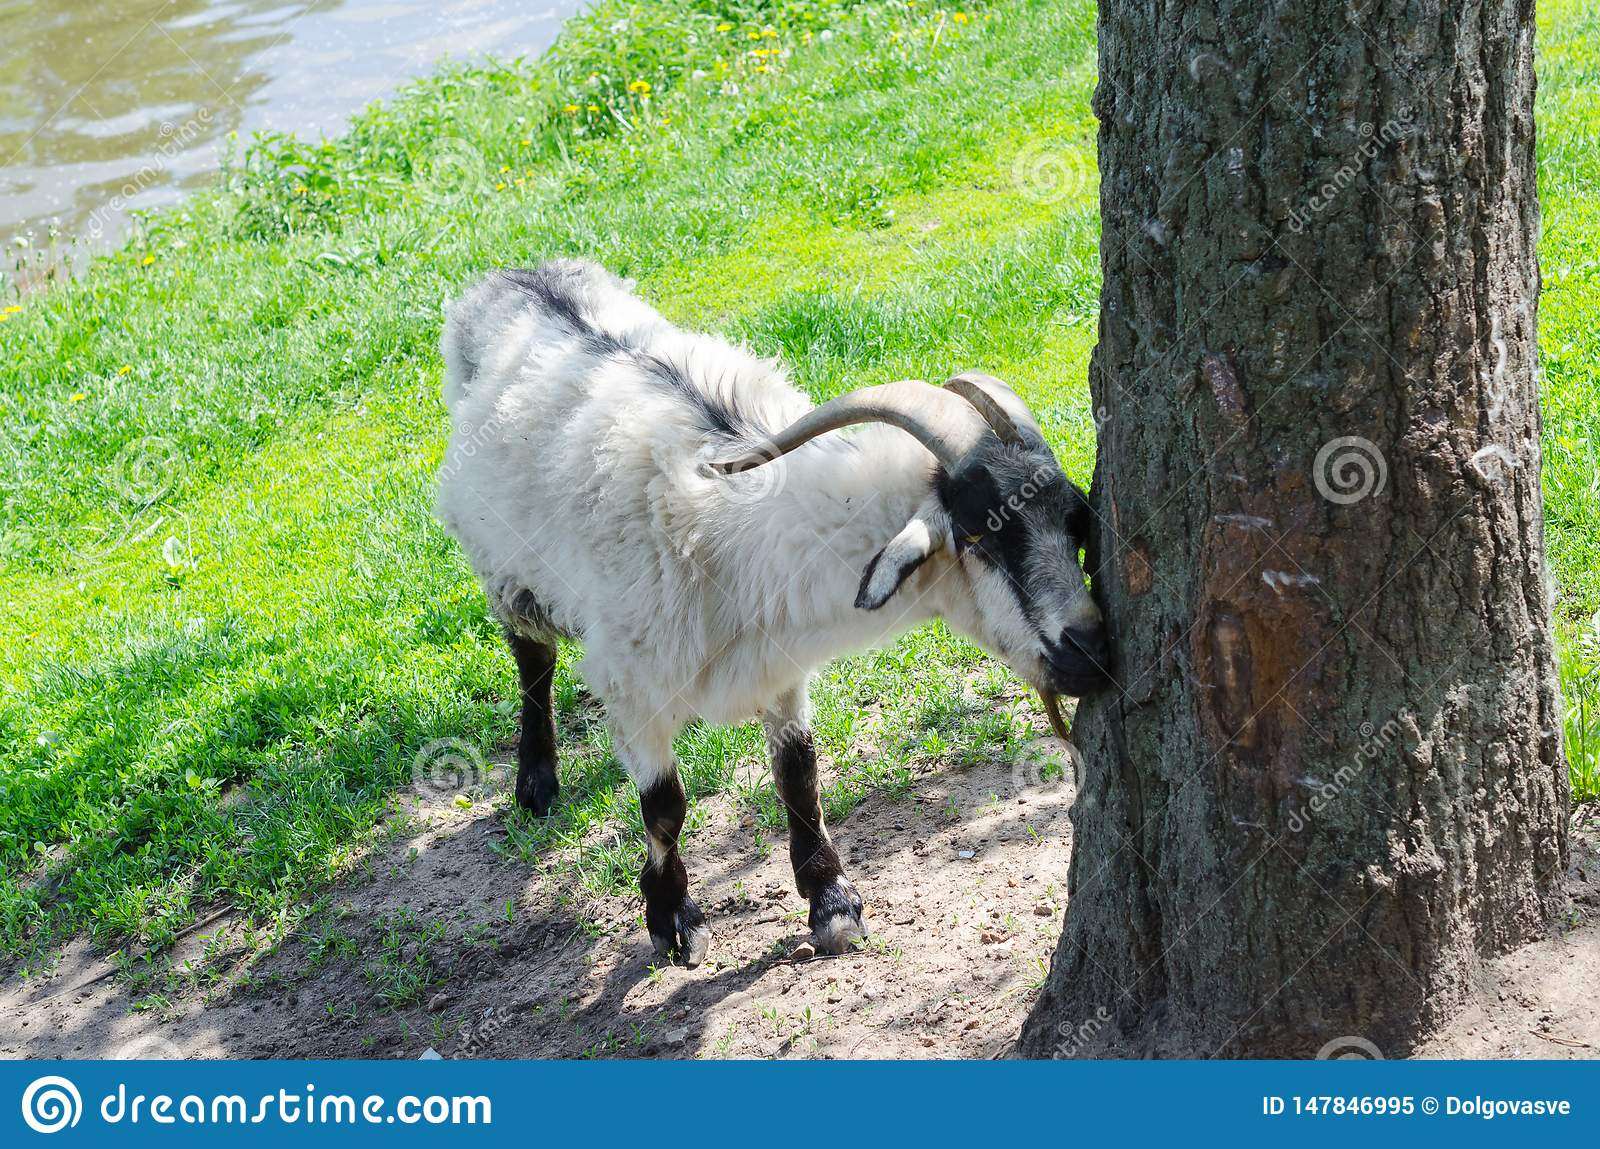 Goat in park about tree